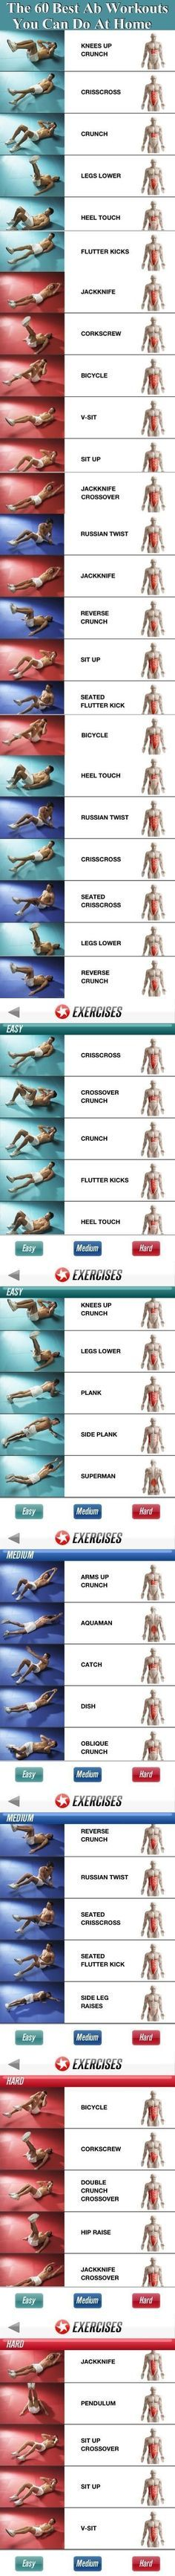 Lower Abs Workout Motivate Yourself 1) Set short-term goals Having something specific to aim for, such as losing a certain amount of weight or entering a race, will help you stick to your training …